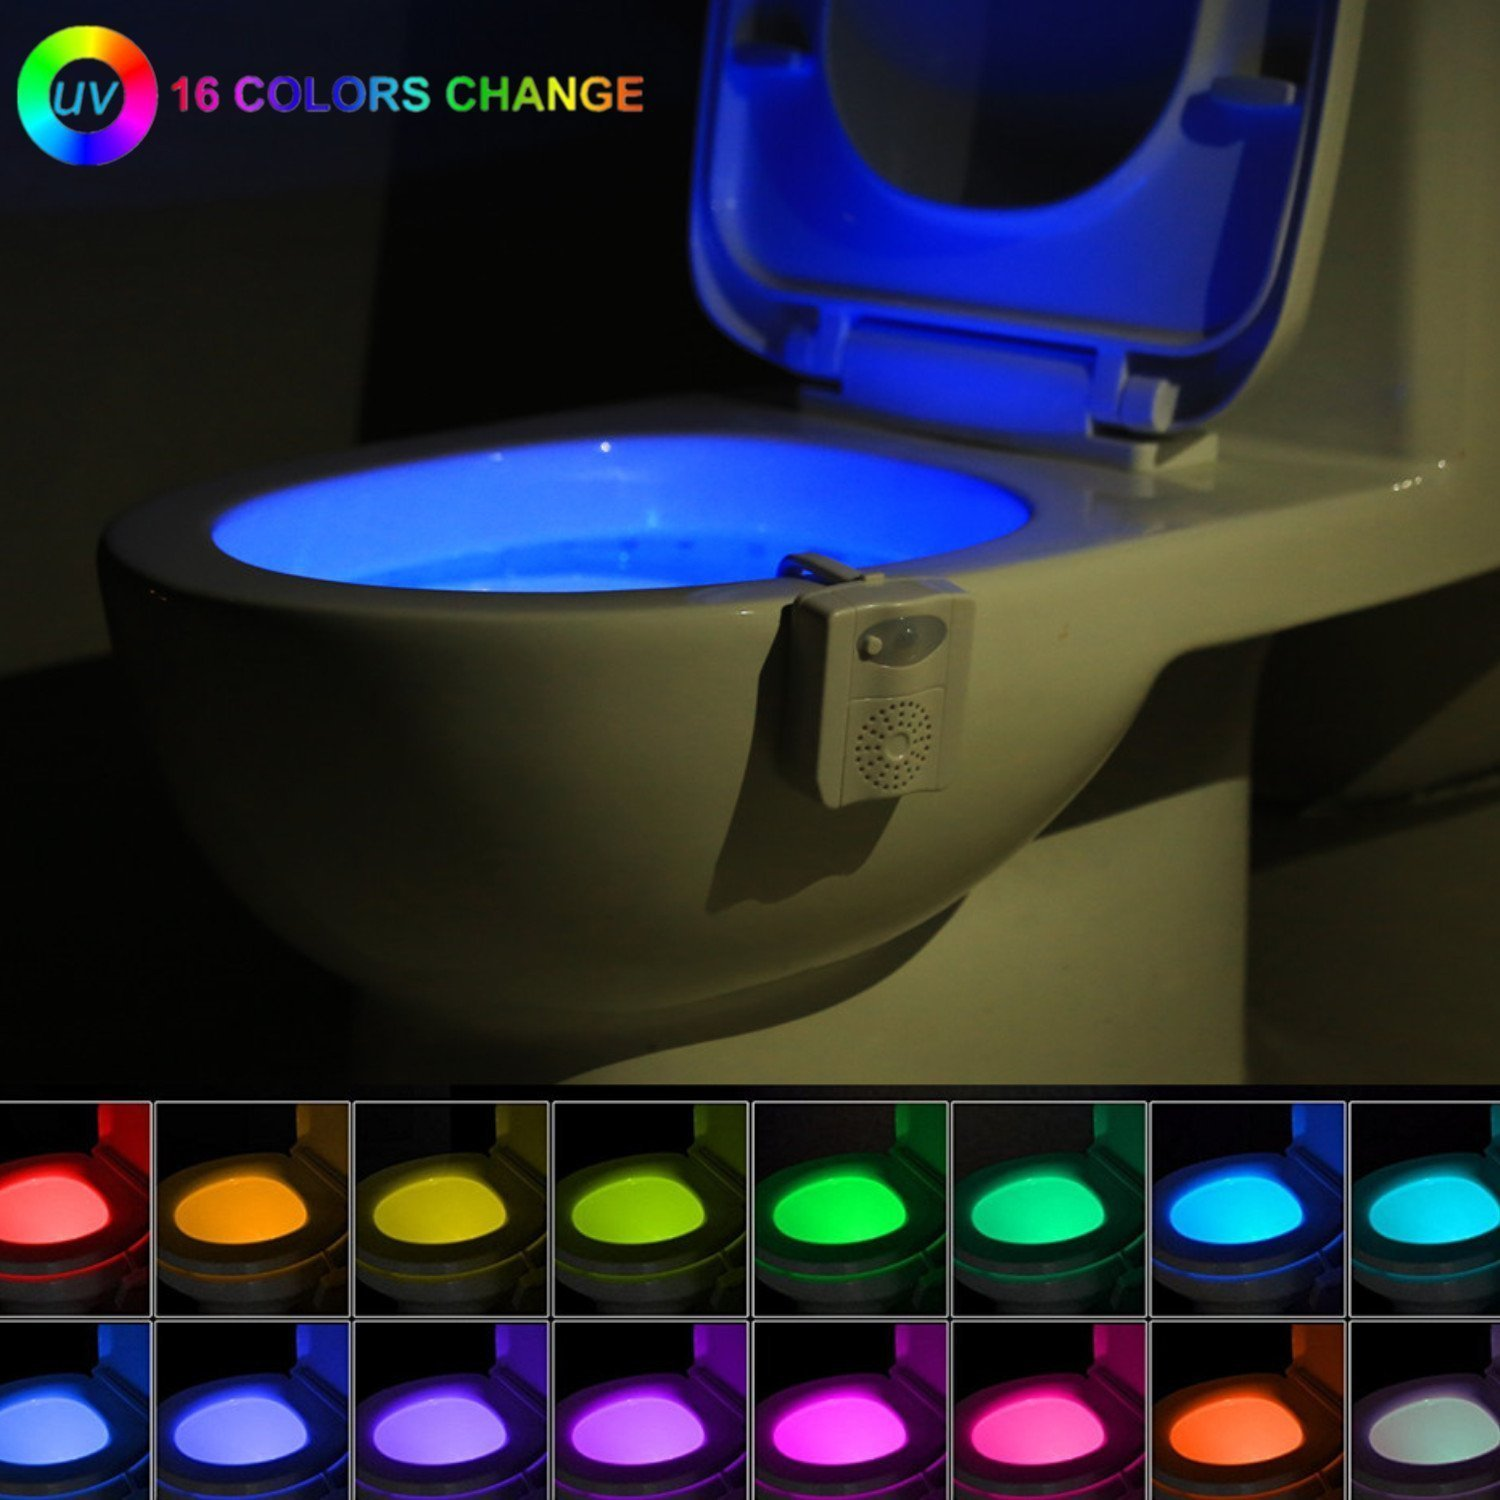 16-Color UV Sterilization Toilet Night Light Gadget, Motion Sensor Activated LED Lamp, Fun Washroom Lighting Add on Toilet Bowl Seat with Aromatherapy for Dad, Kids, Toddler Potty Training Funny Gifts Zezhou